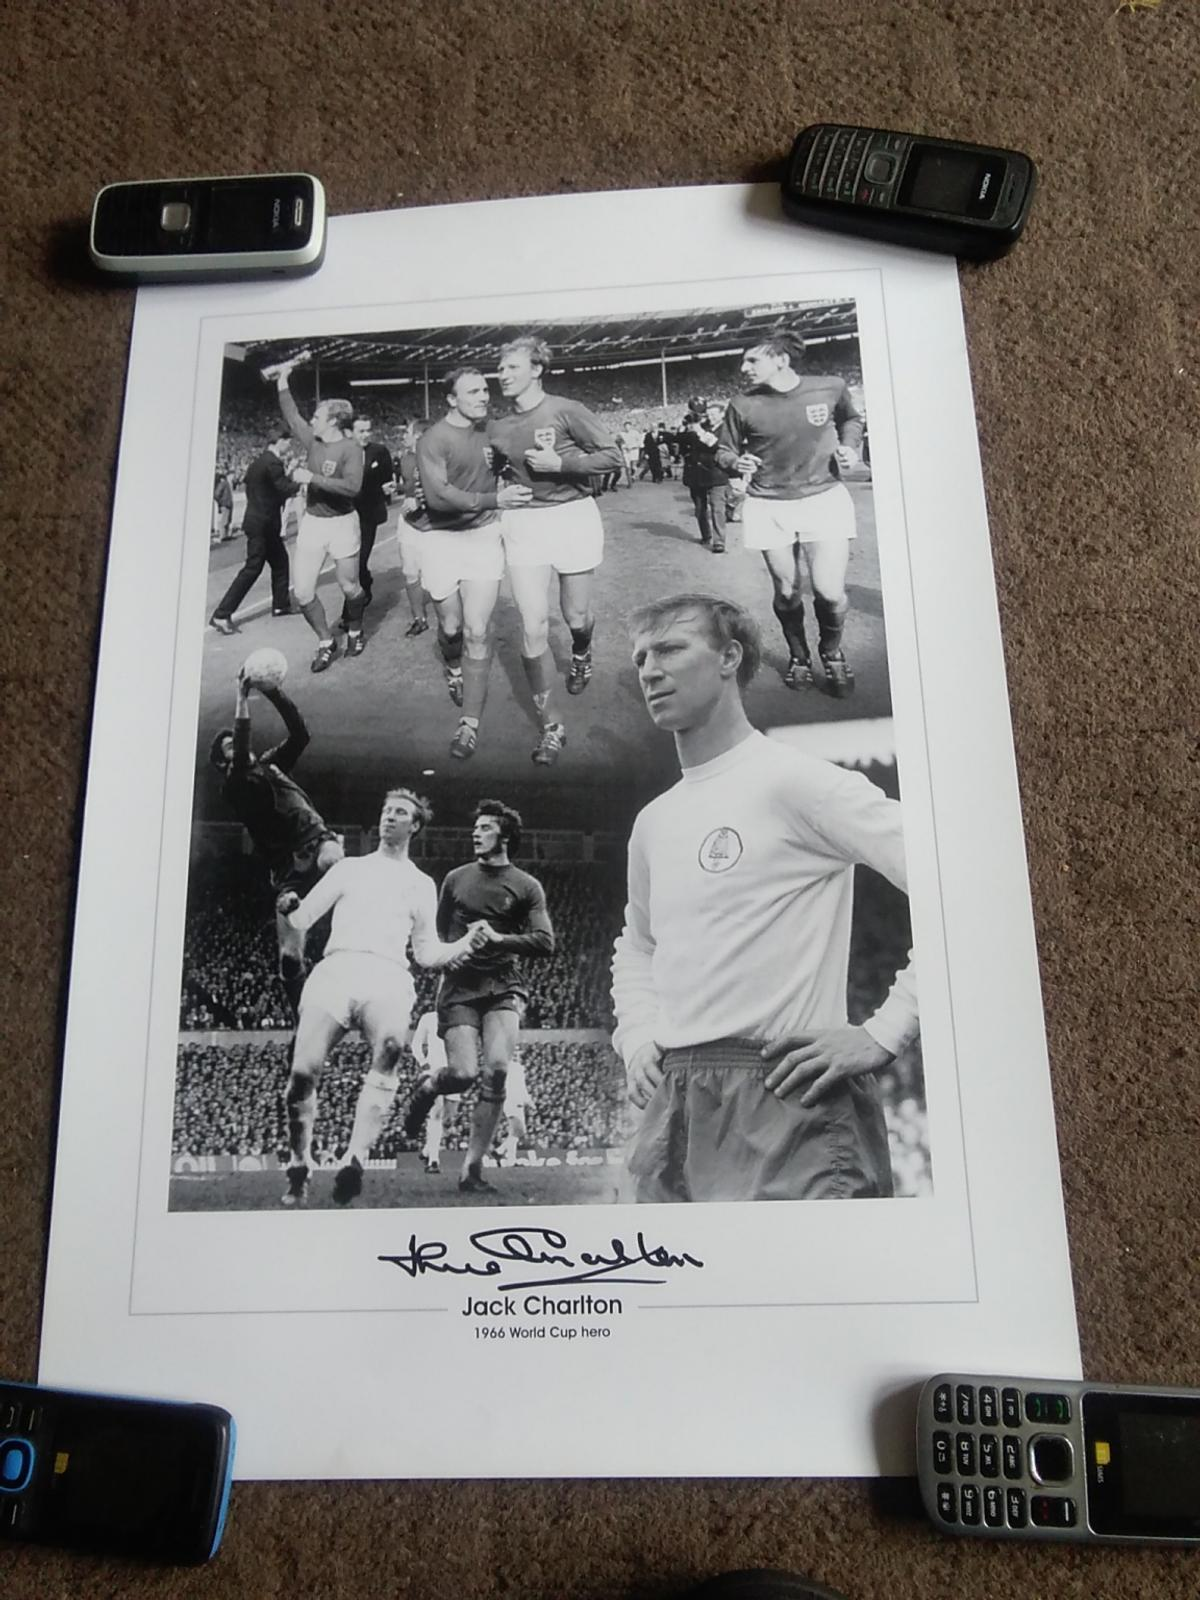 JACK CHARLTON HAND SIGNED LARGE MONTAGE PHOTO 20 INCHES X 14 INCHES 1966 ENGLAND WORLD CUP LEGEND EXCELLENT CONDITION PICK UP OR CAN POST TO YOU